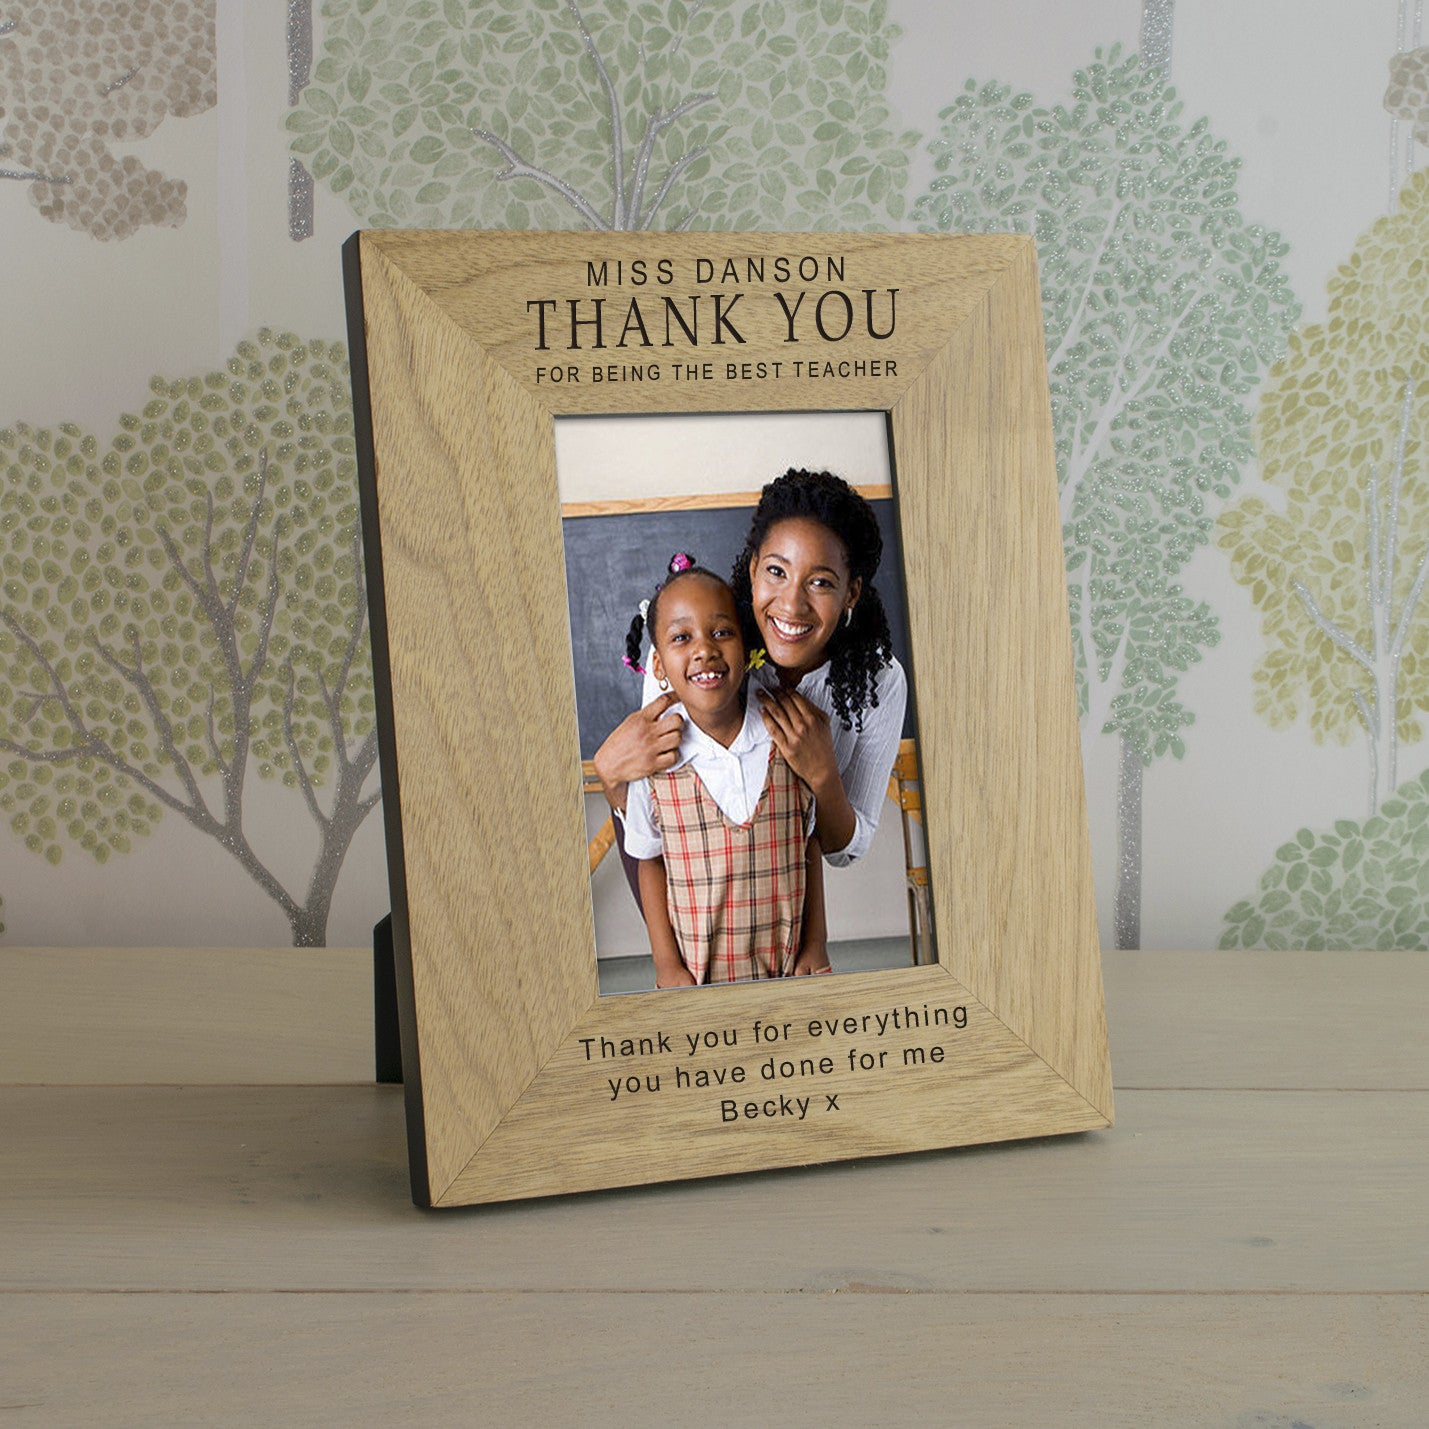 Thank You Teacher Wooden Frame 4x6 & 6x4, Home & Garden by Low Cost Gifts